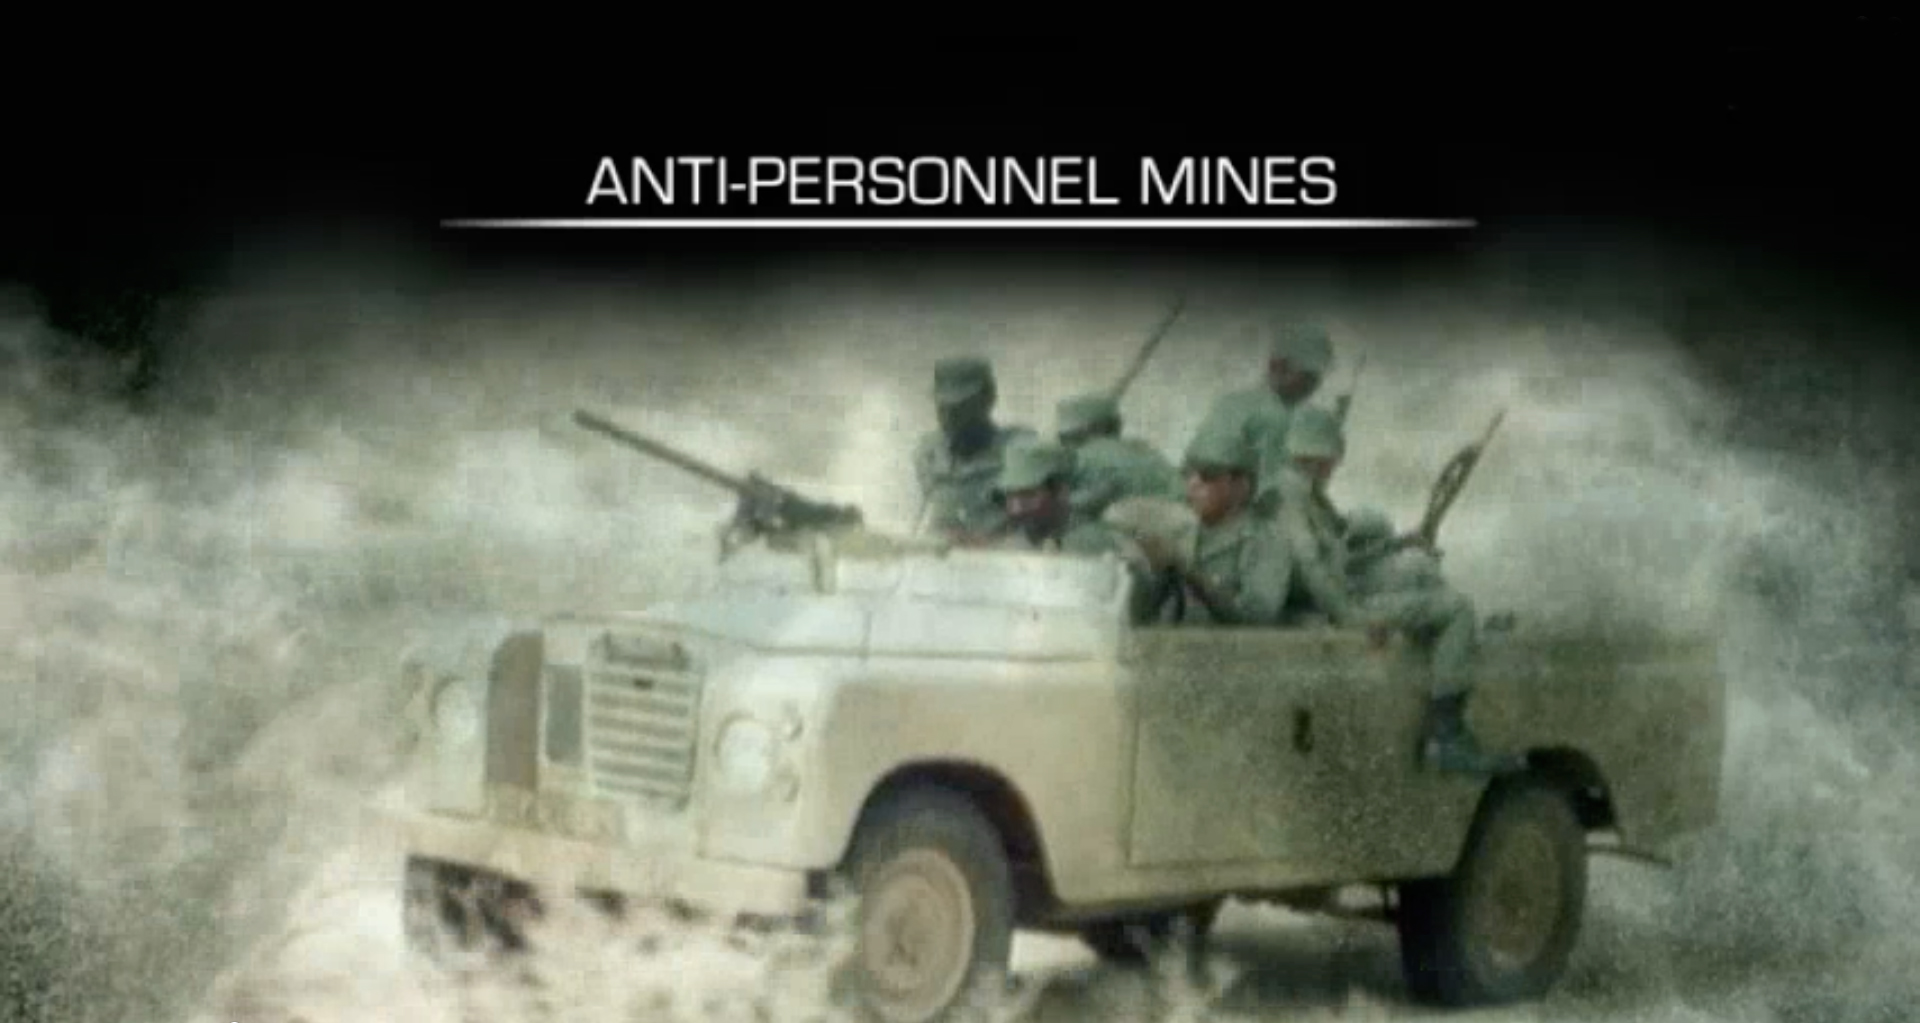 Mines antipersonnel - version en anglais